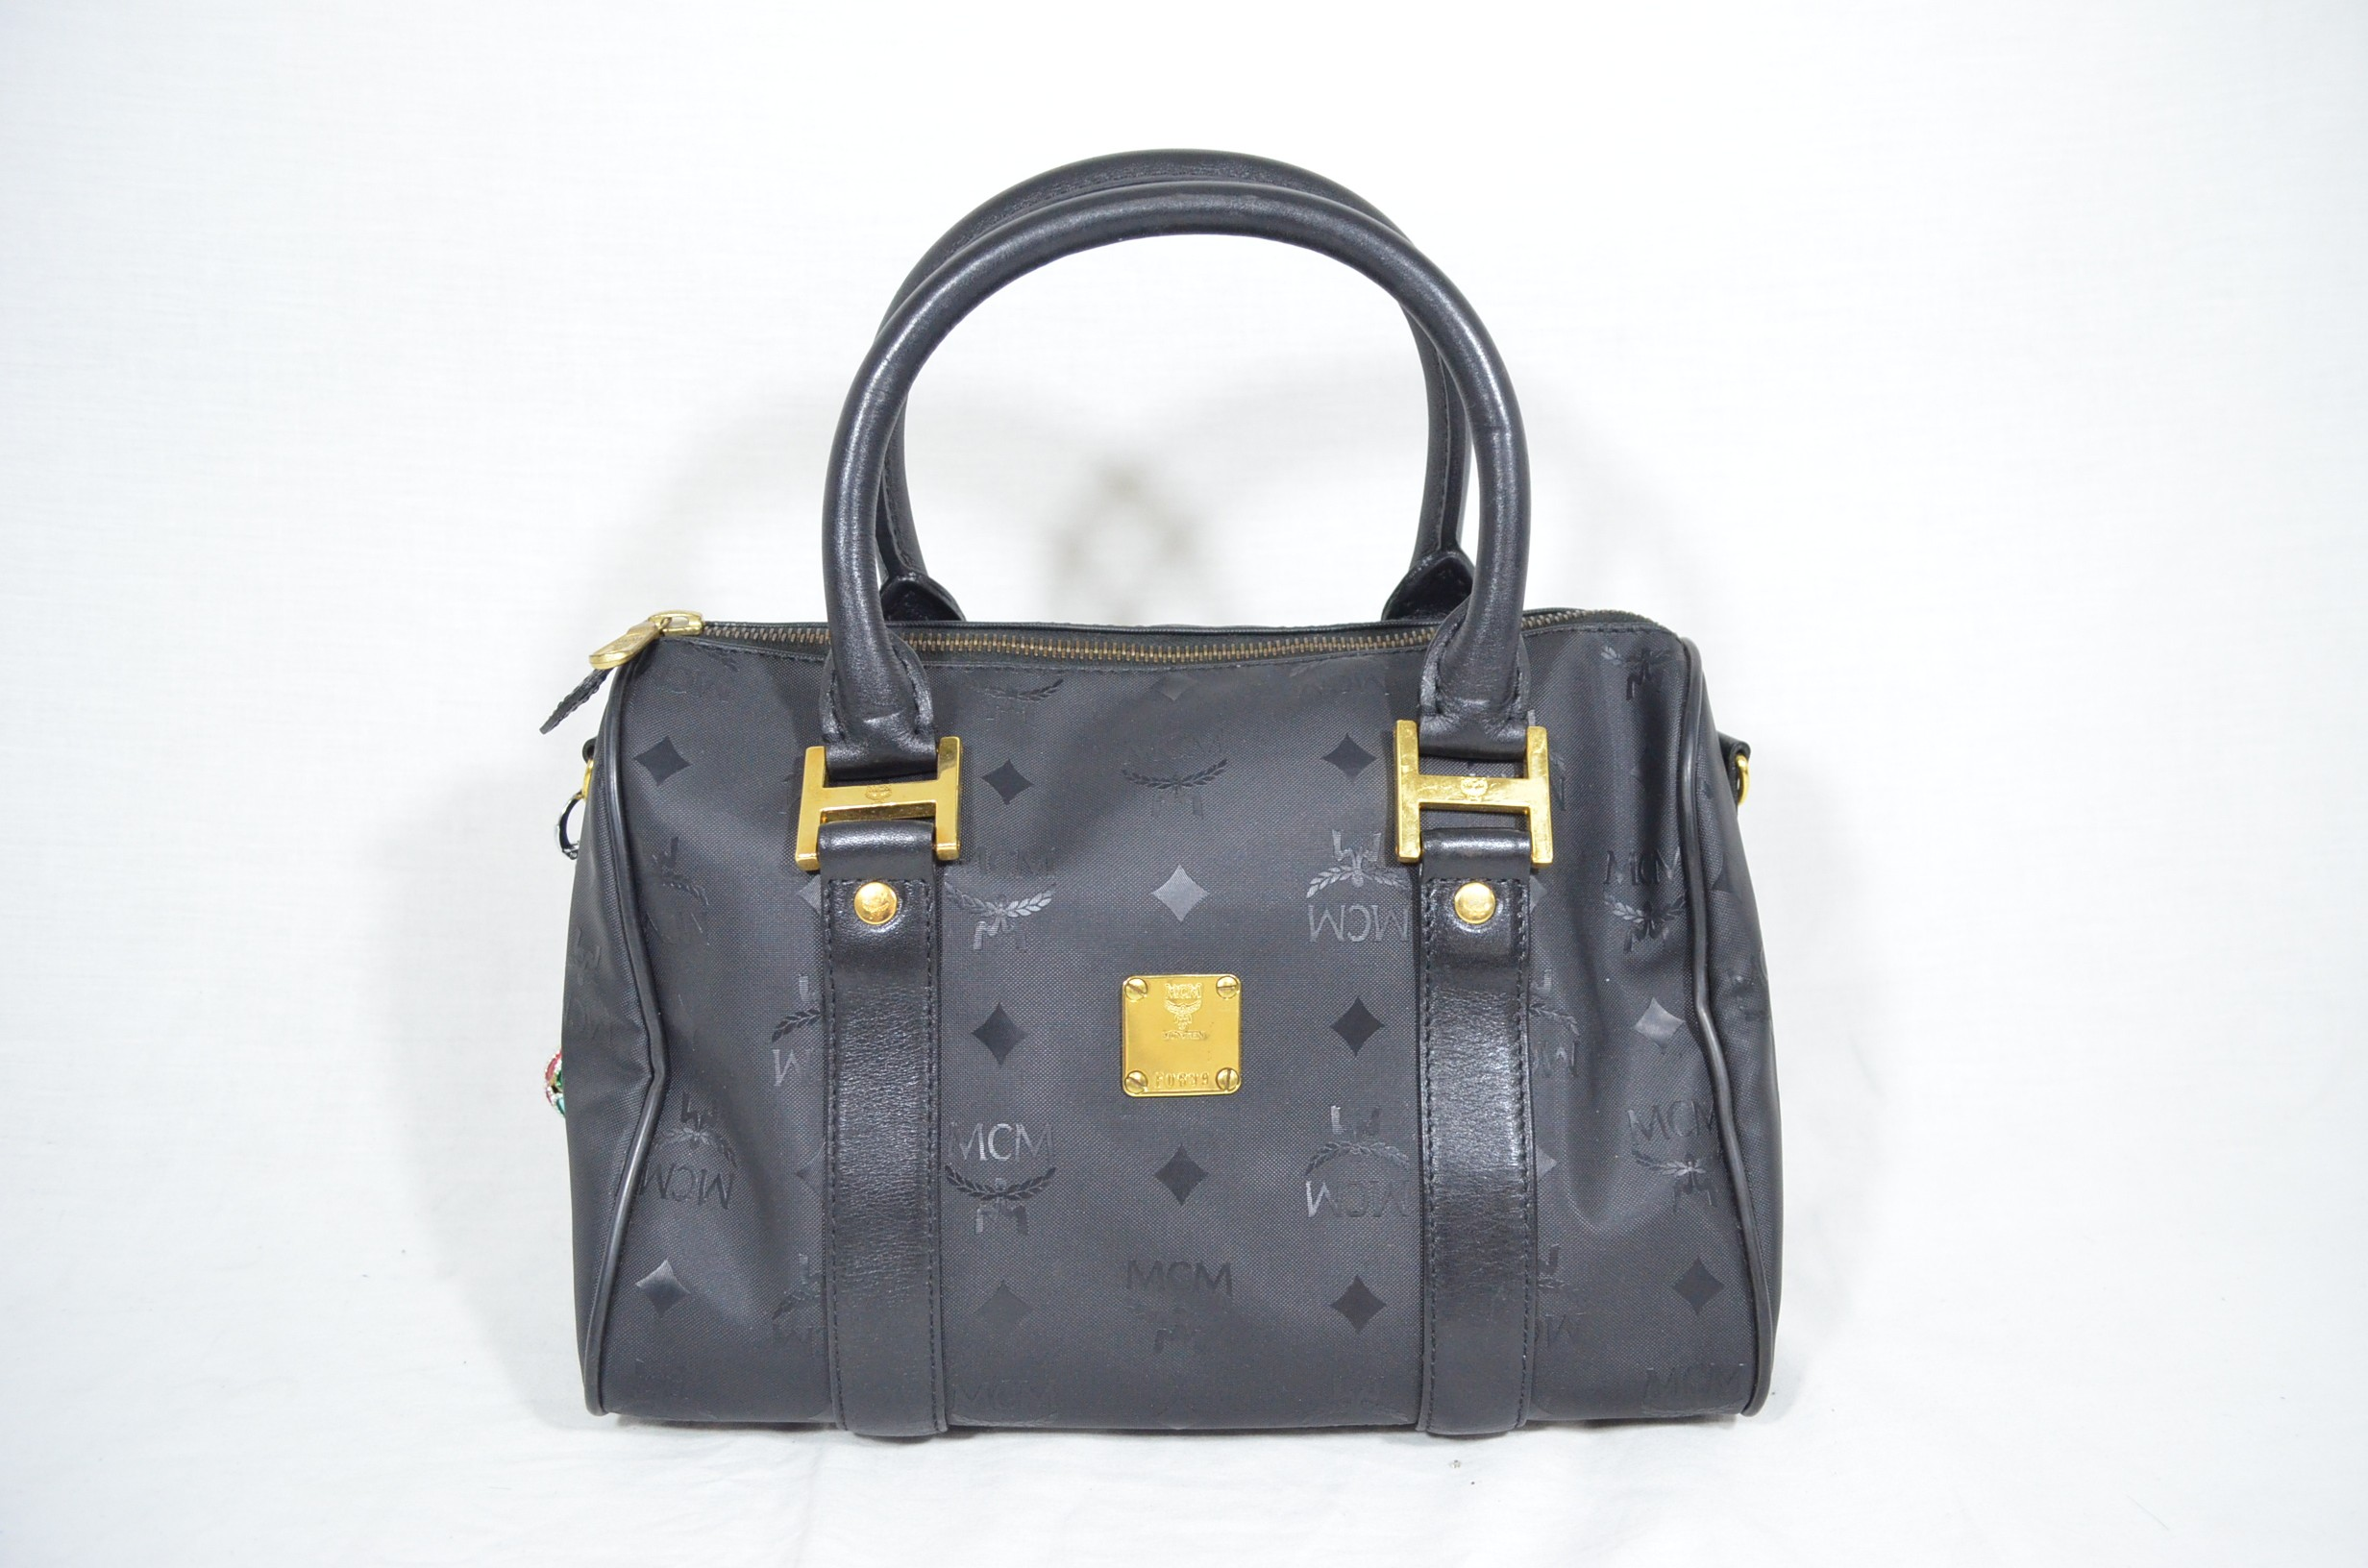 c79cf13436f97 Mcm Bag Price Ph